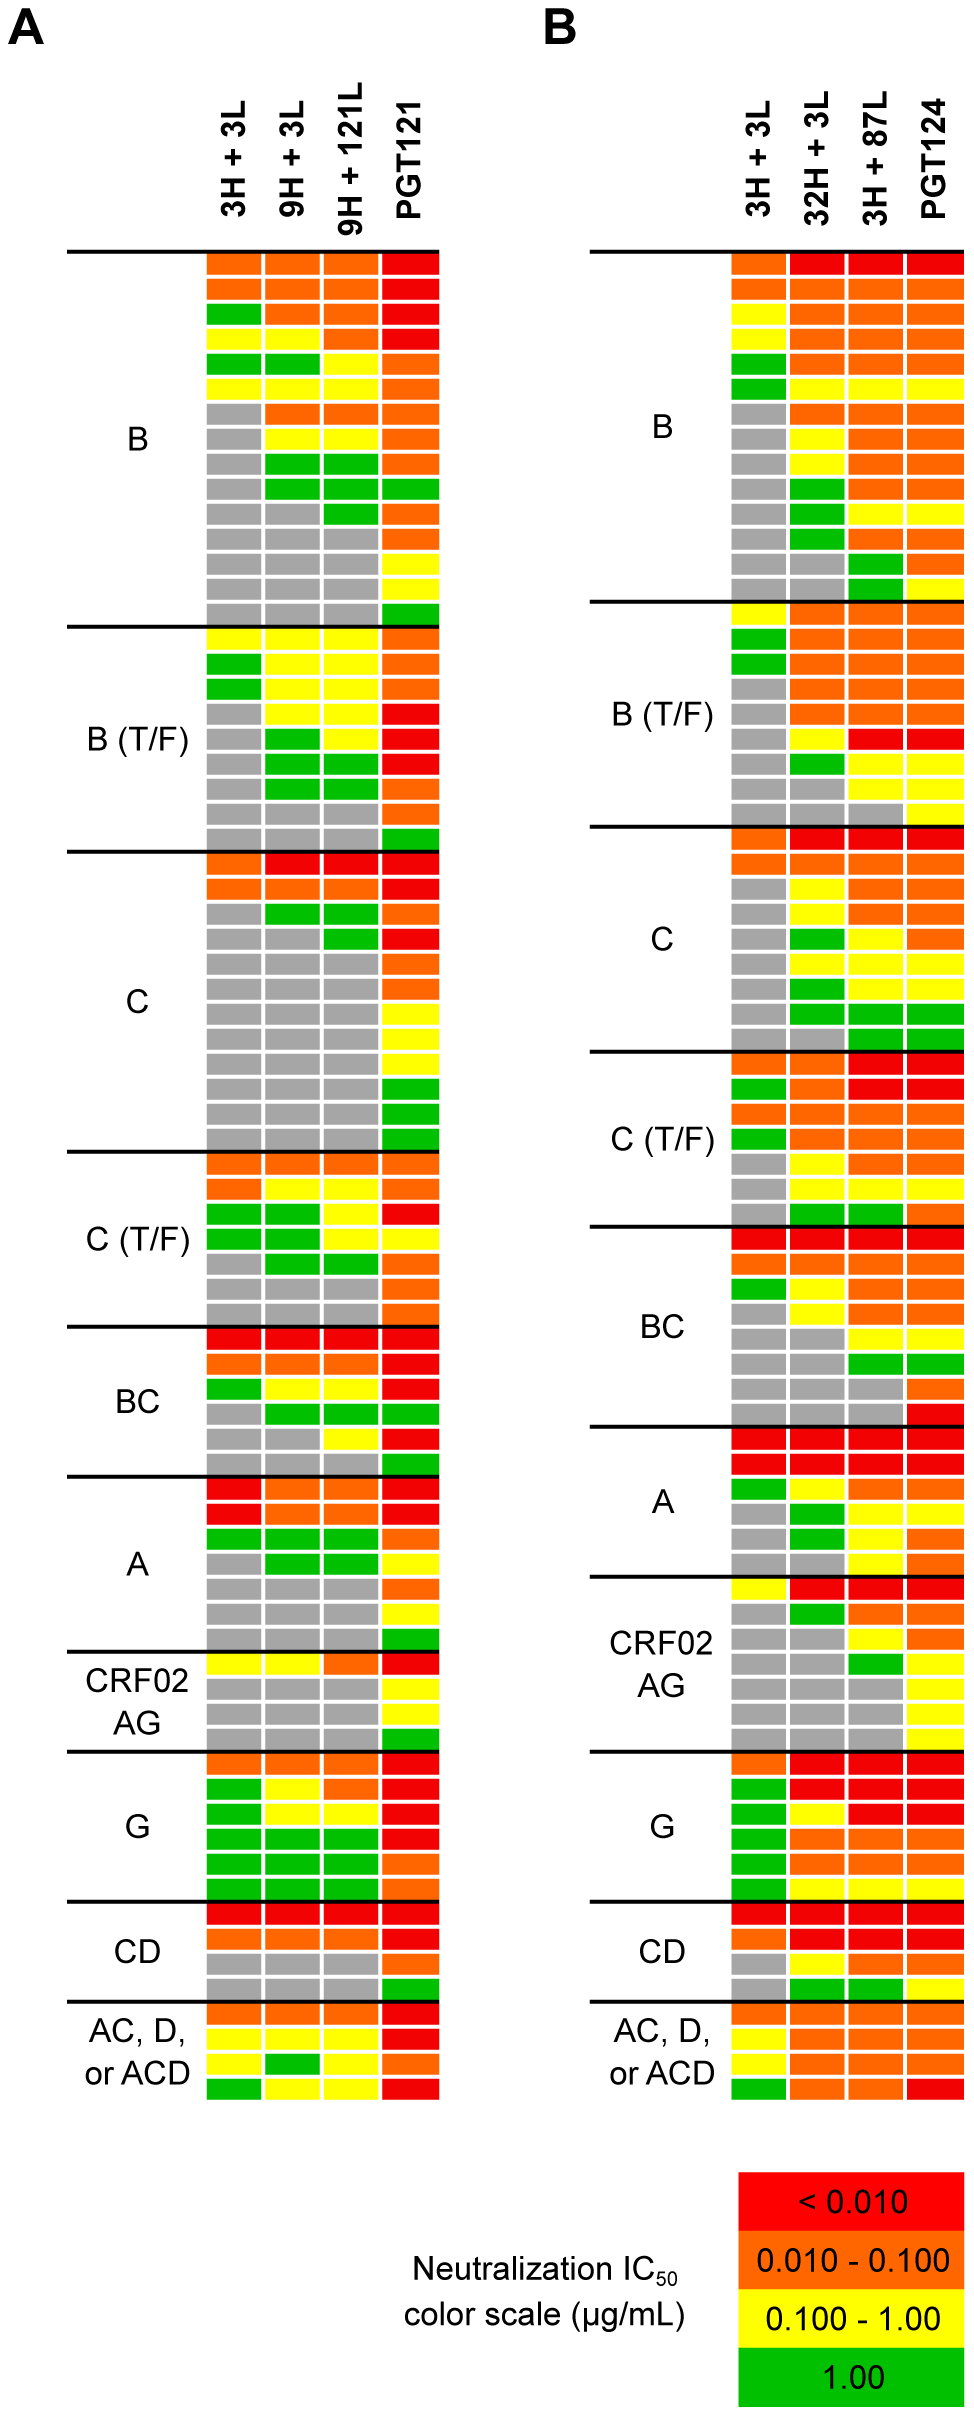 Selected heavy and light chain clones were paired and tested for neutralization breadth and potency on a cross-clade 6-virus panel.